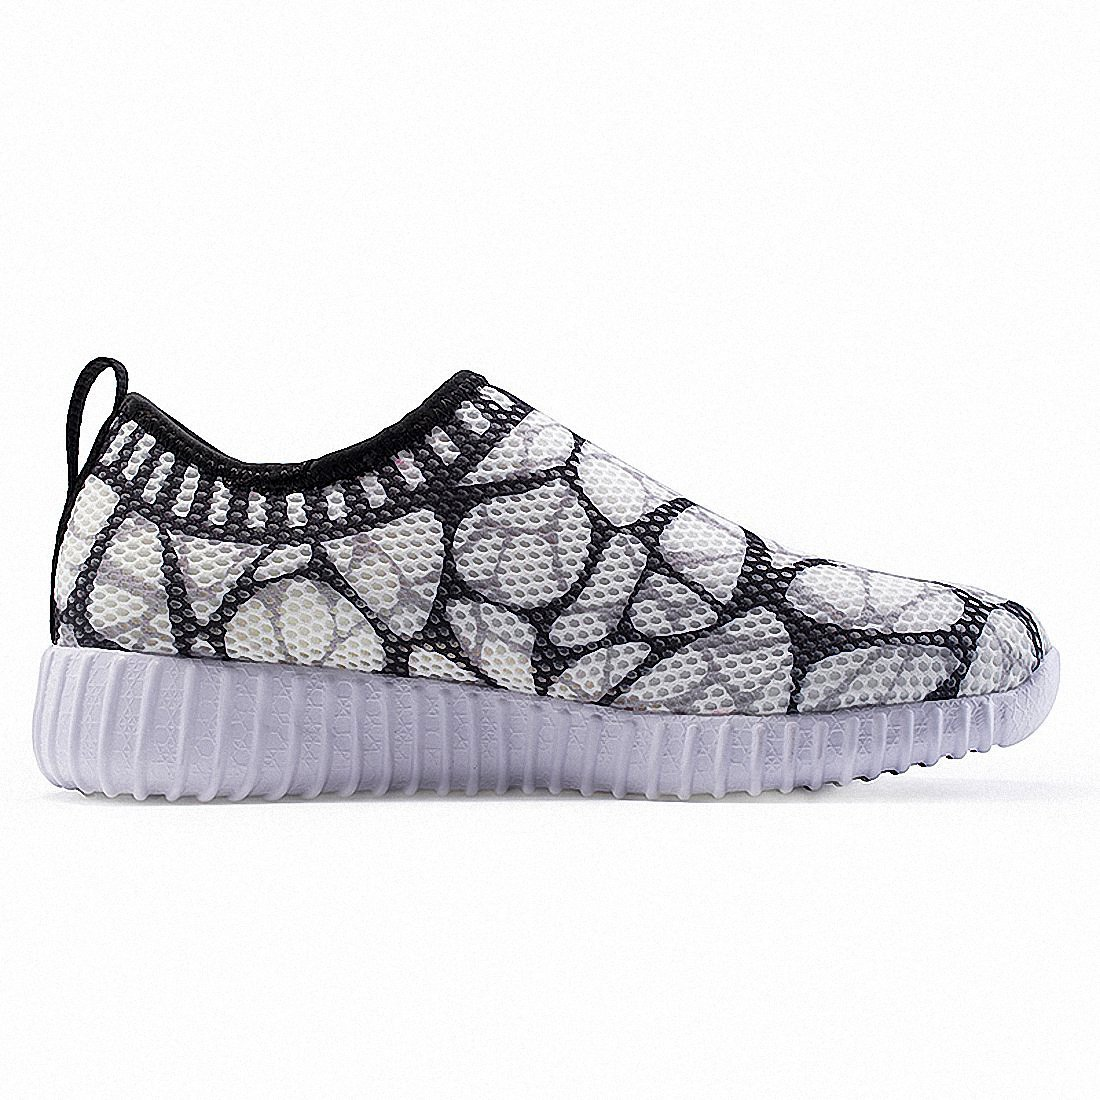 ONEMIX Women\'s Running Shoes Lightweight Brethable Mesh Roshe One Run Walking Sport Trainer Sneaker